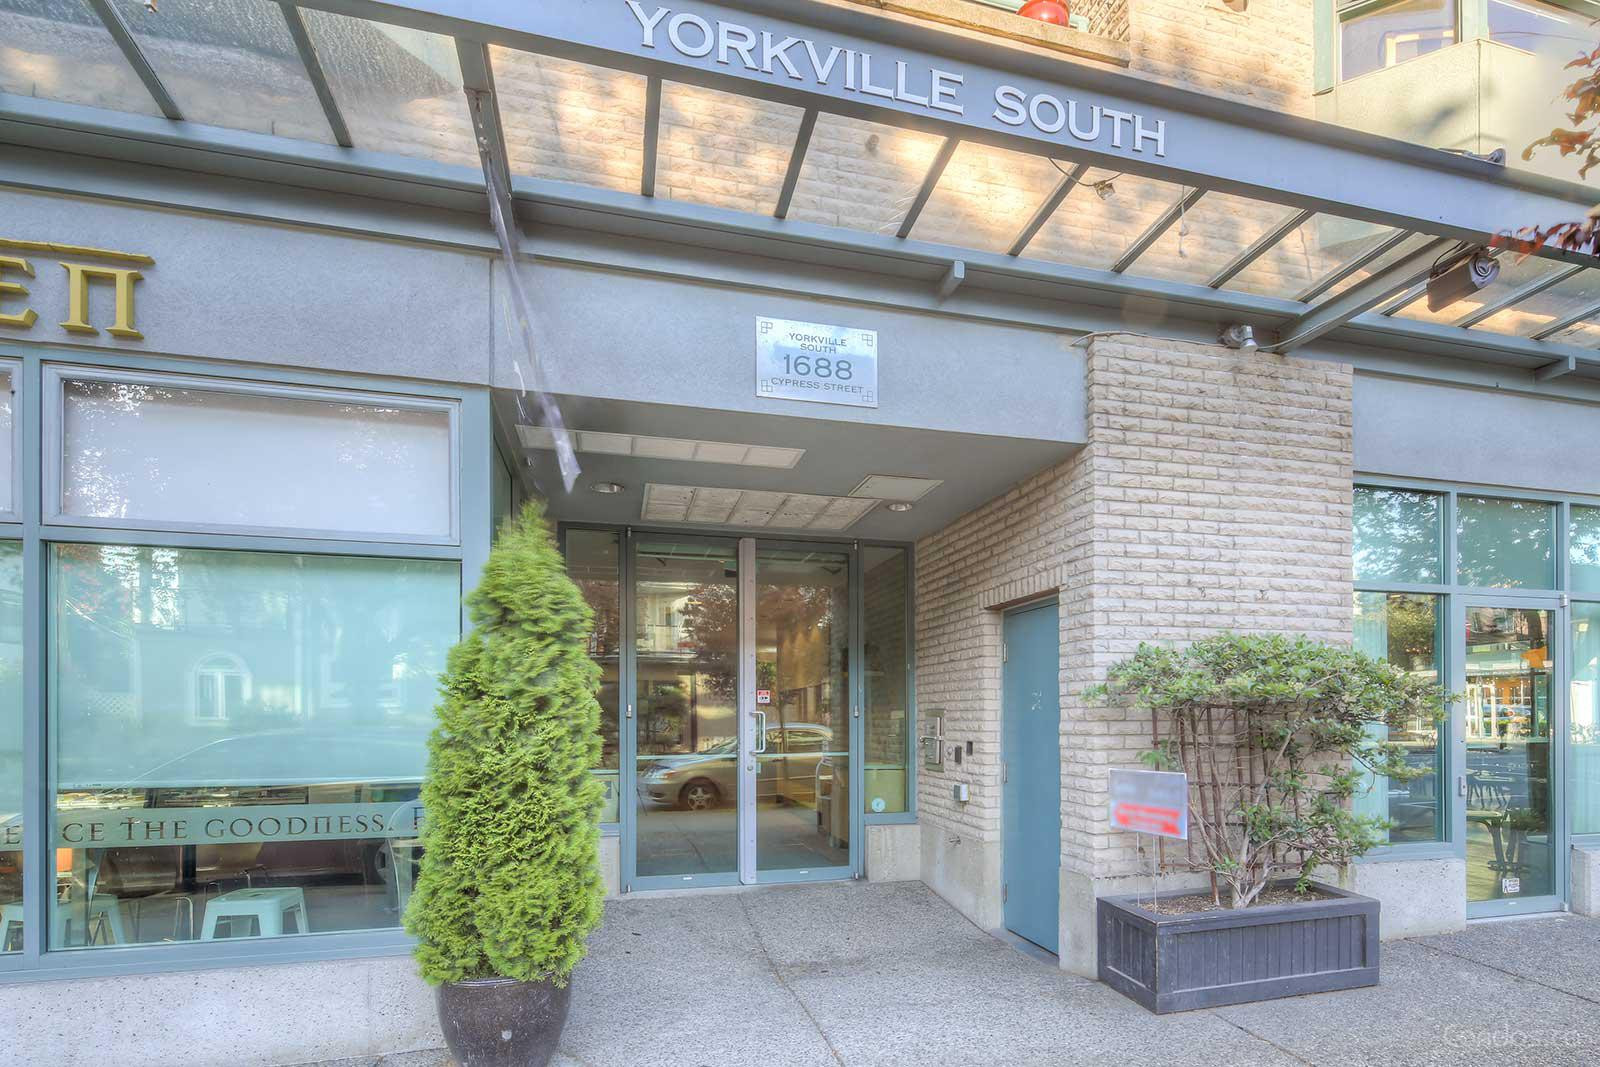 Yorkville South at 1688 Cypress St, Vancouver 0